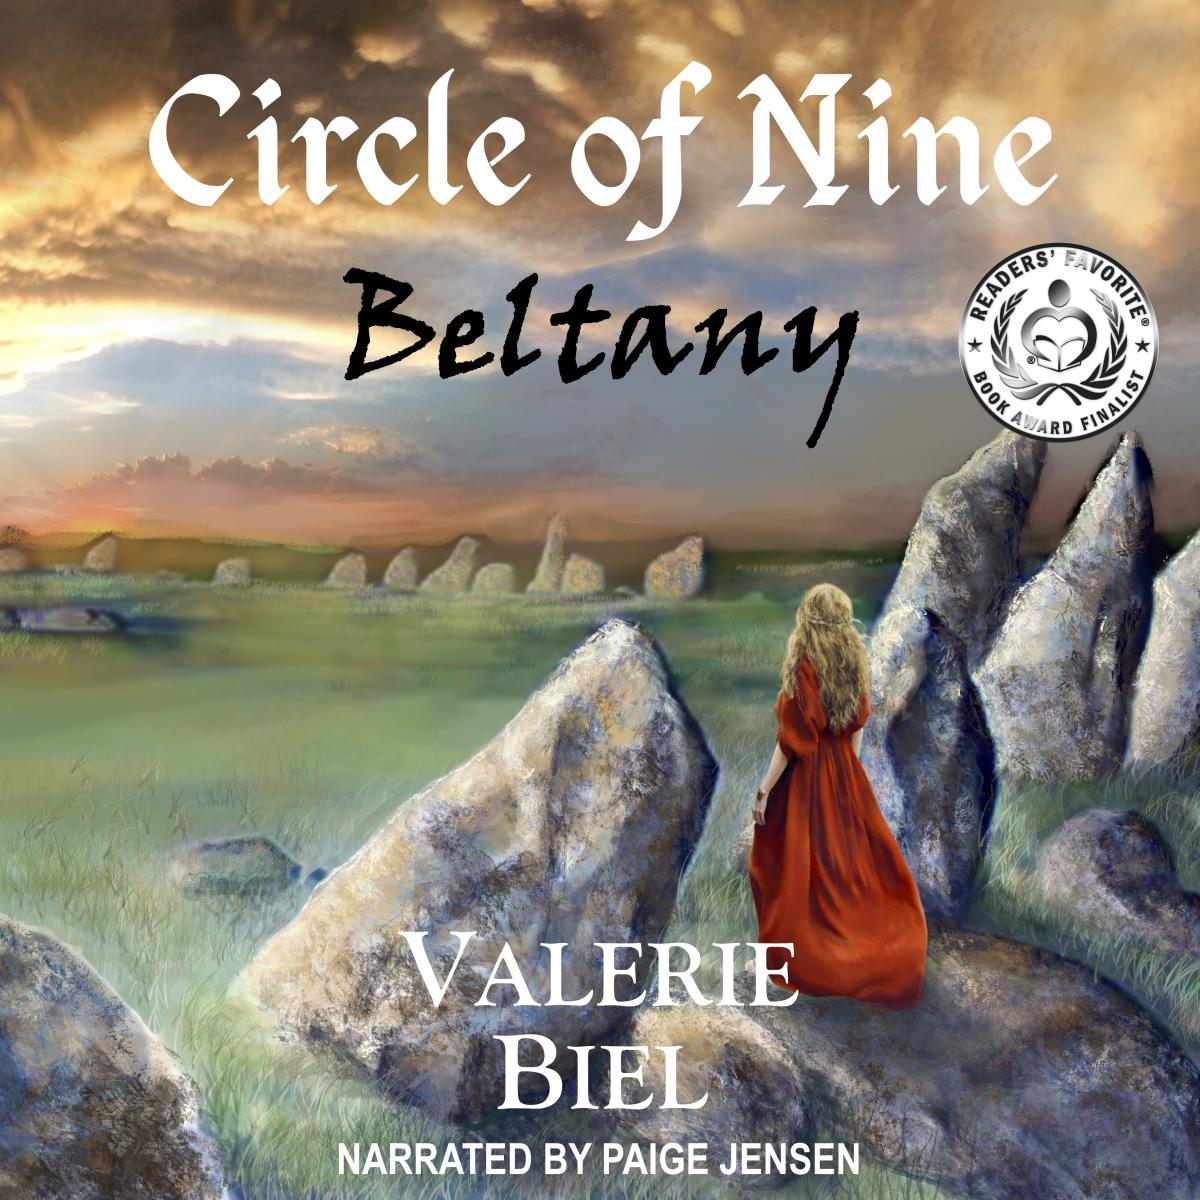 Award-winning Circle of Nine: Beltany now available as an audiobook!